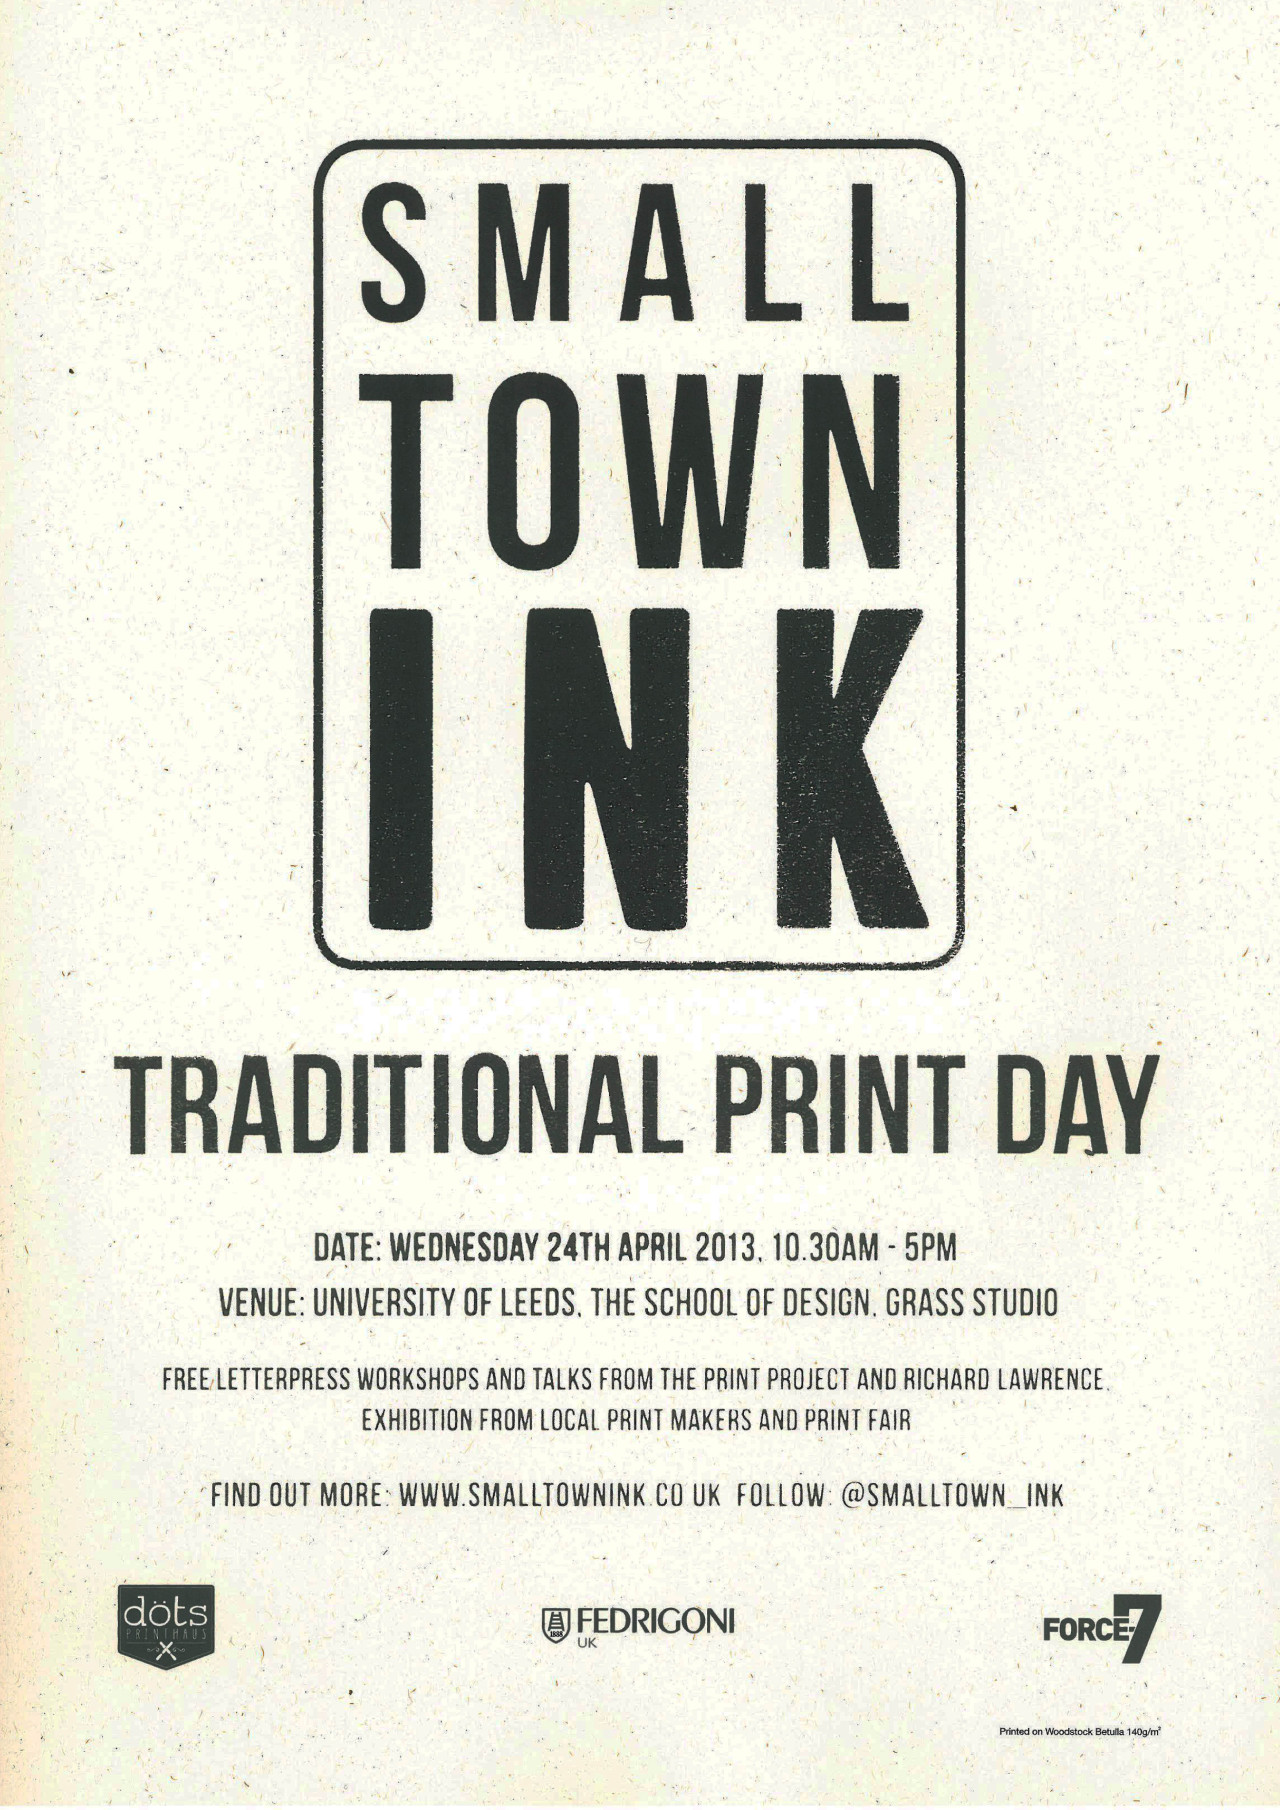 smalltownink:  PUSHING TRADITIONAL PRINT IN A NEW DIRECTION  On Wednesday 24th April SMALL TOWN INK will be hosting a Traditional Print Day in the School of Design Grass Studio at Leeds University from 10.30am - 5pm. All students and creatives from the surrounding area will be able to take part in free Letterpress workshops and hear talks from The Print Project (http://theprintproject.Co.Uk/) and Richard Lawrence (http://www.Richardlawrenceprinter.Co.Uk/). An exhibition from local print makers will also be on show, along with local companies selling prints and giving out information on traditional print services which are available in the local area.  It's set to be a great day and hope to see you all there!   For regular updates follow us on twitter and instagram: @smalltown_ink